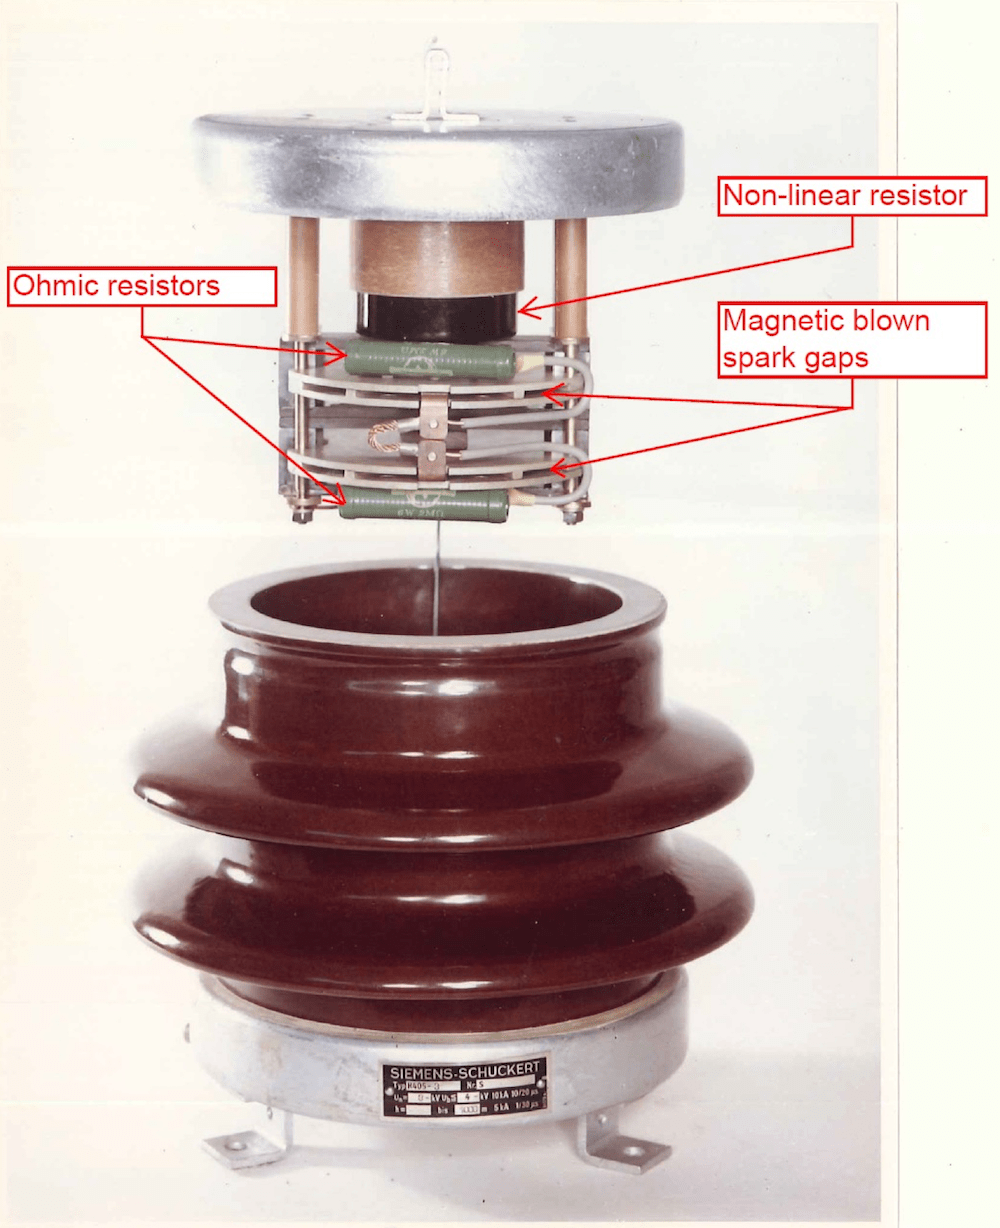 Fig. 1: 3 kV DC surge arrester from 1960 (courtesy, Siemens AG). [object object] Development & Testing Surge Arresters for DC Applications 3 kV DC surge arrester from 1960